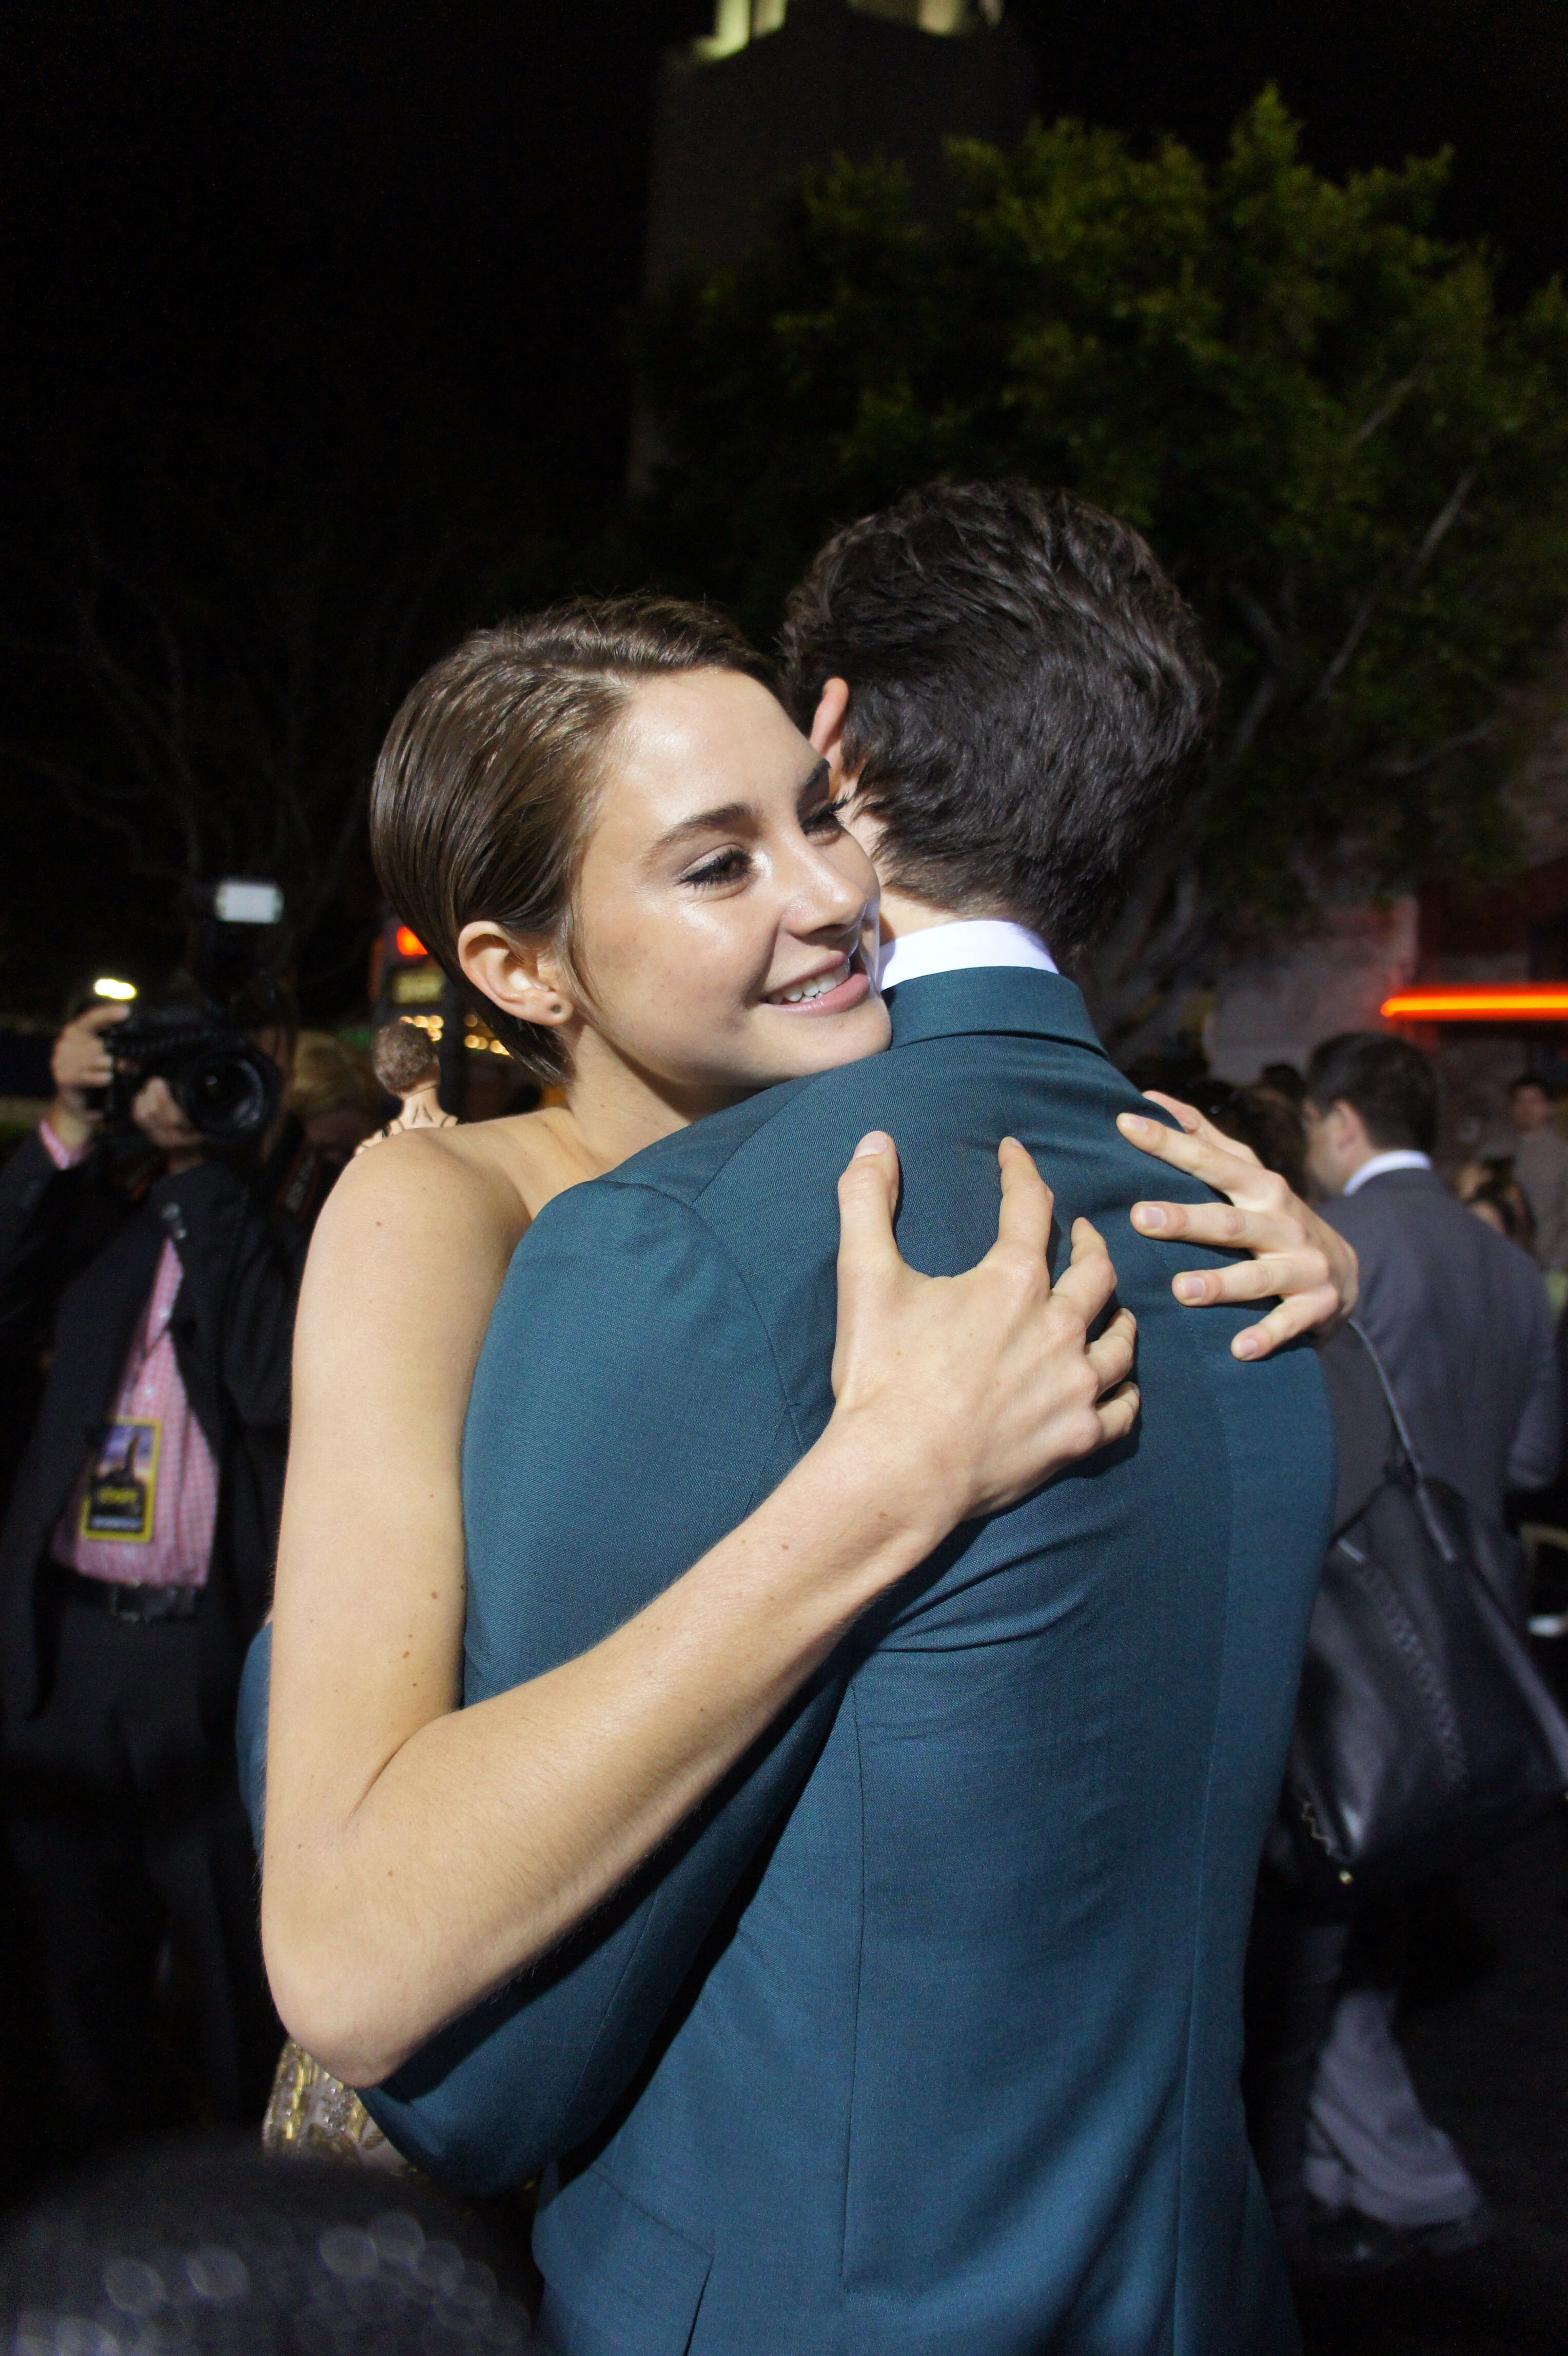 Shailene Woodley and Miles Teller at the Divergent World Premiere on March 18th in Westwood, CA.